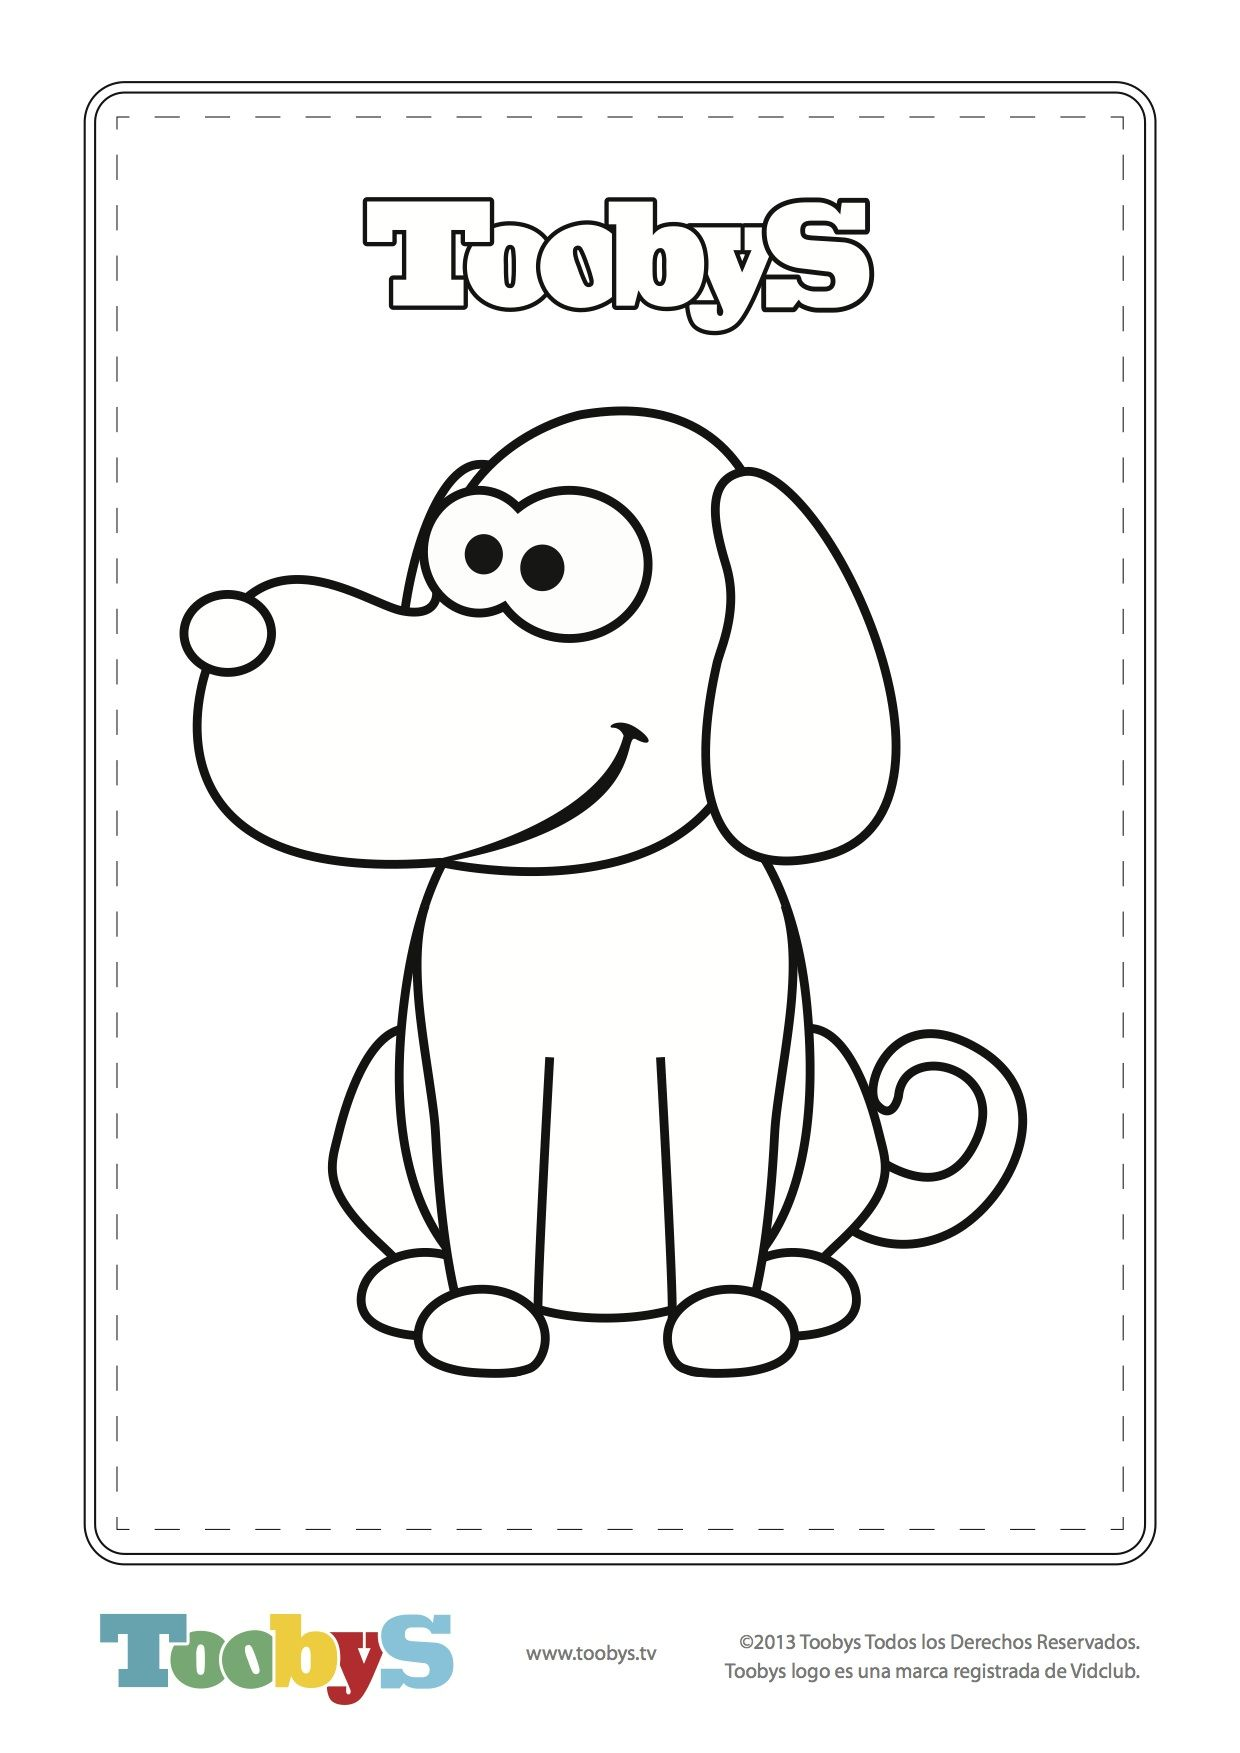 Toobys - Dog for coloring - www.toobys.tv   fiesta toobys ...